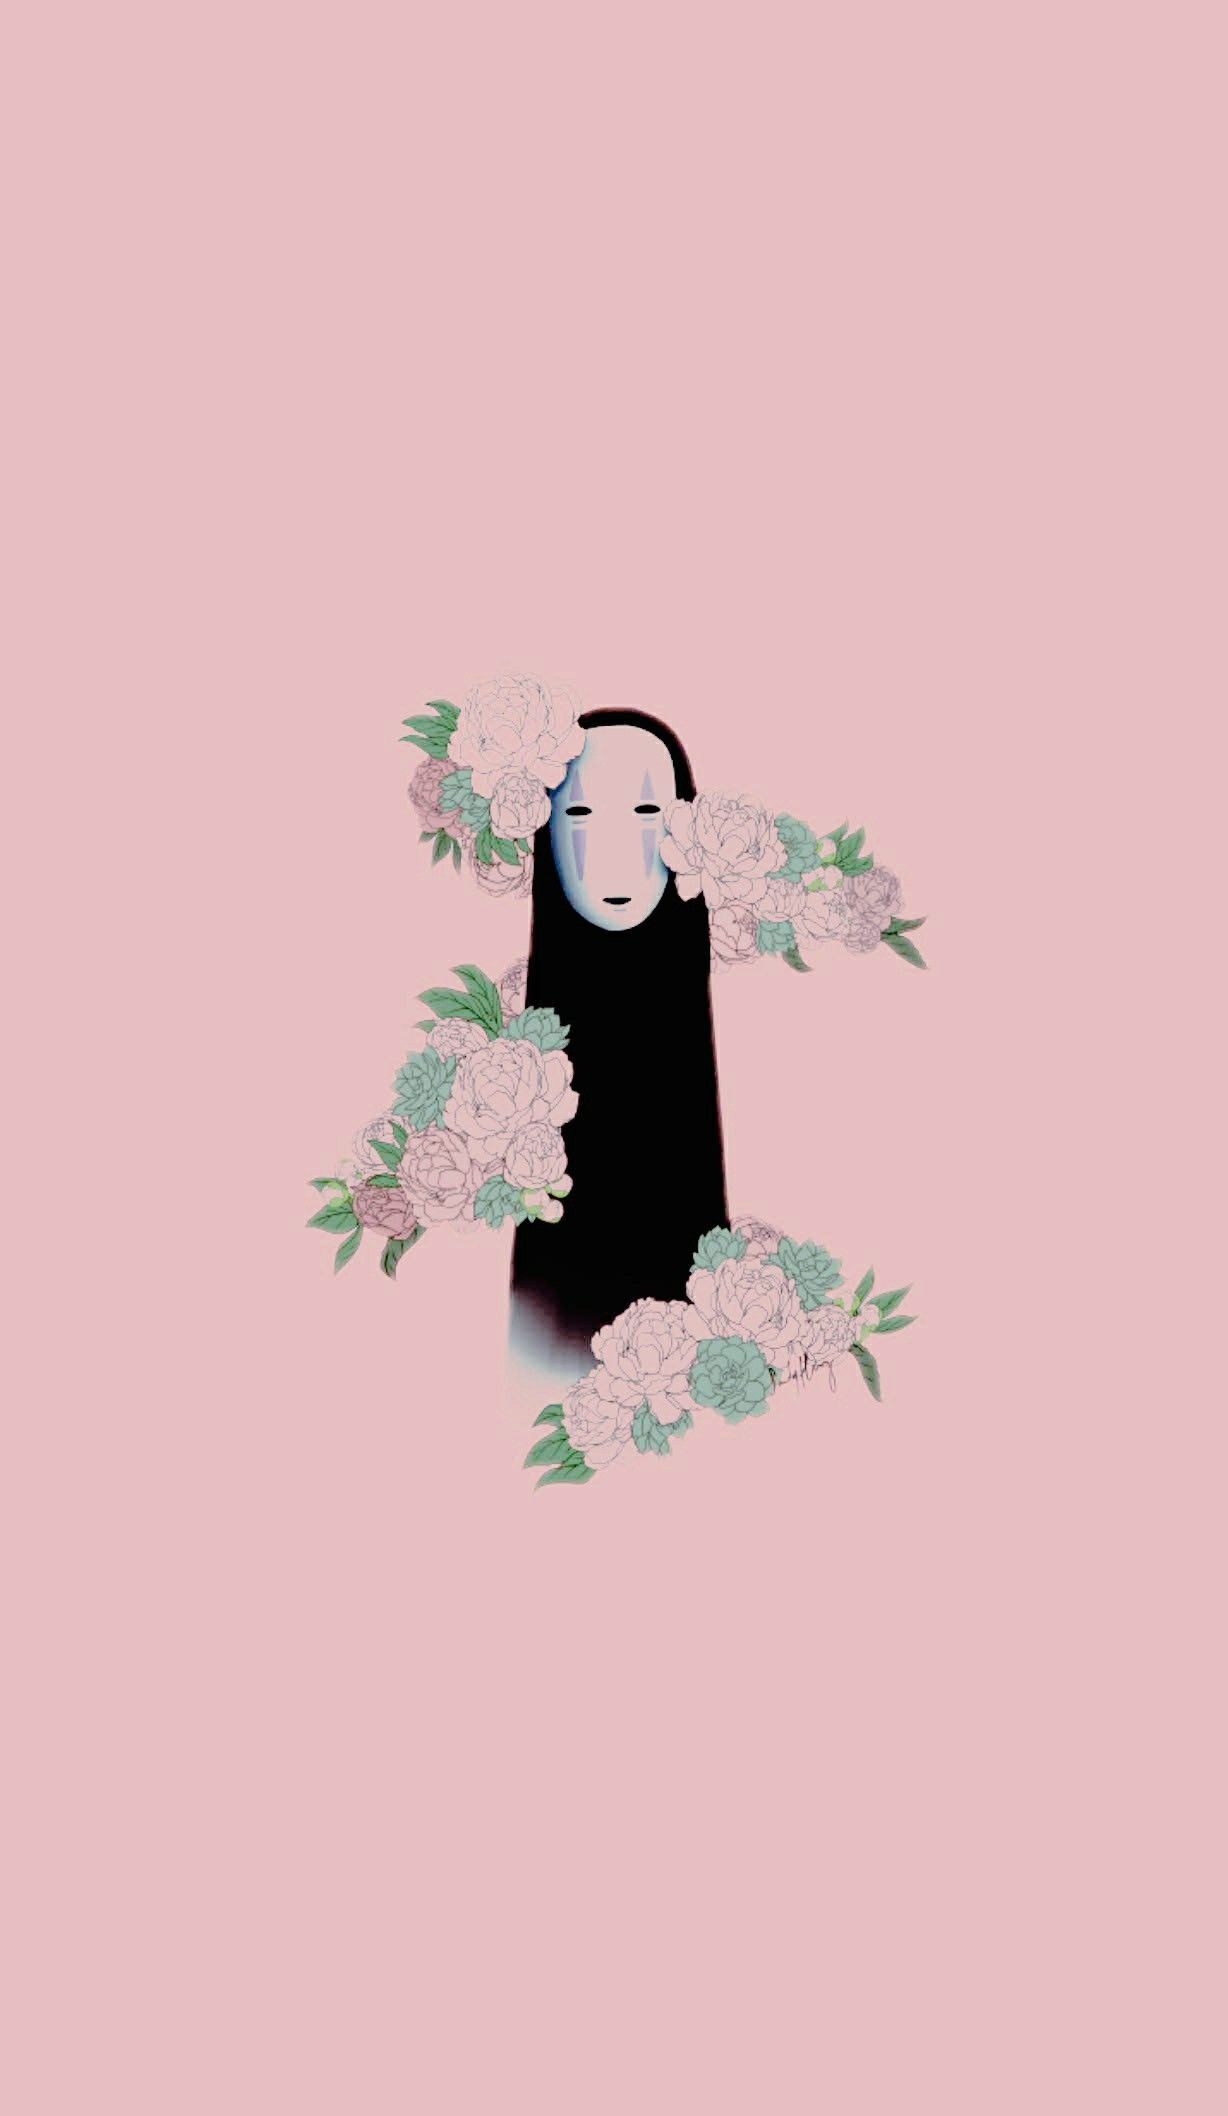 No Face Wallpaper Posted By Ethan Tremblay